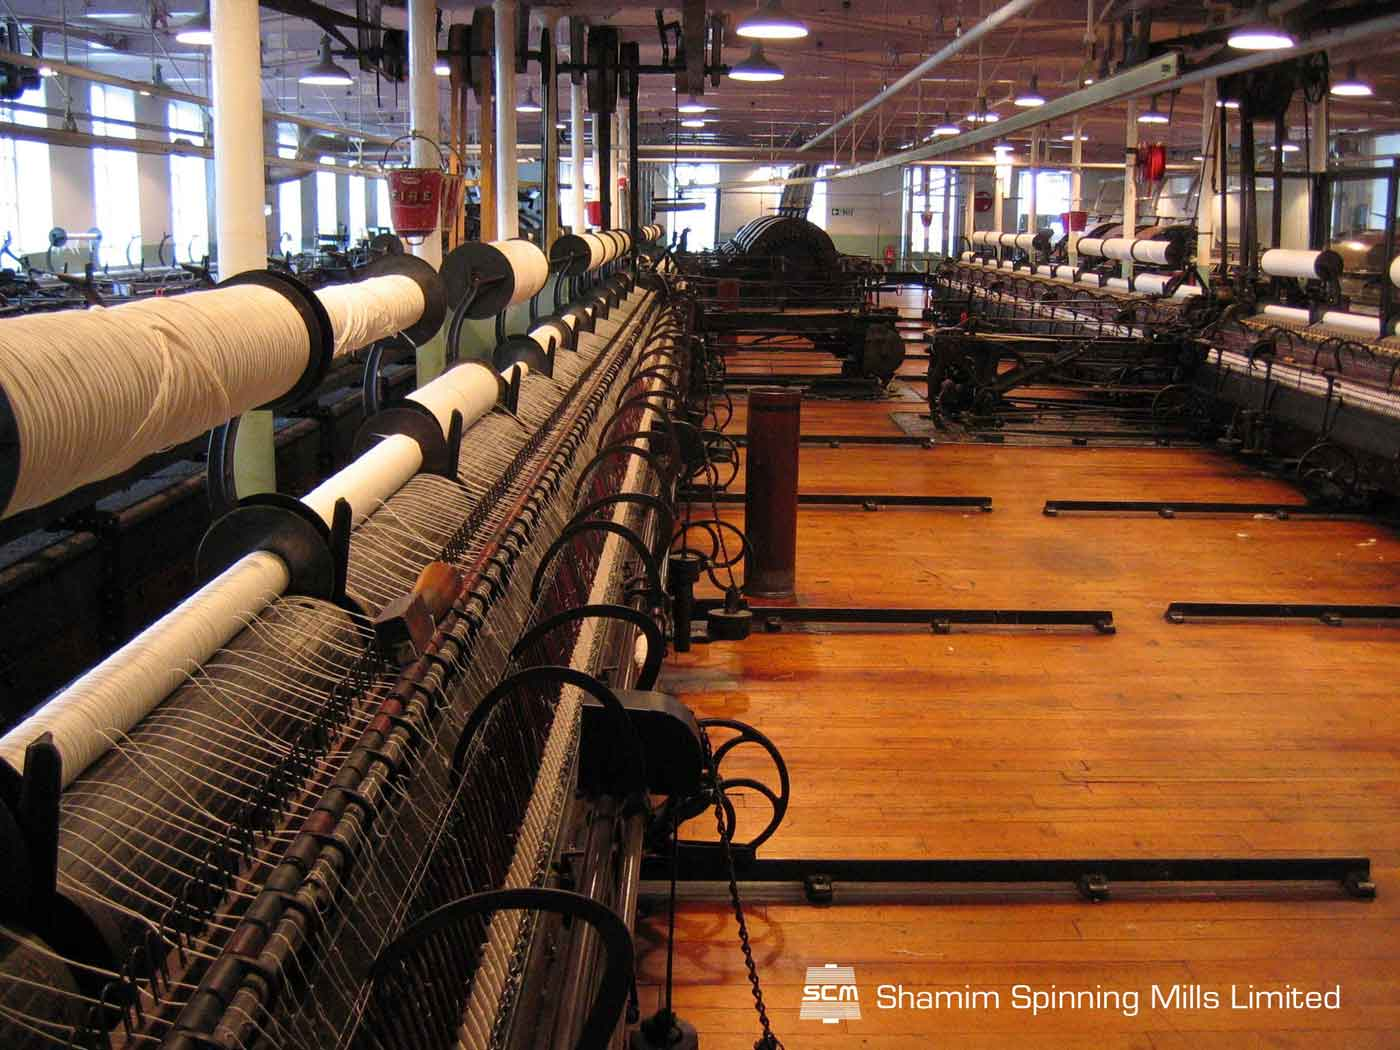 Shameem Spinning Mills Ltd